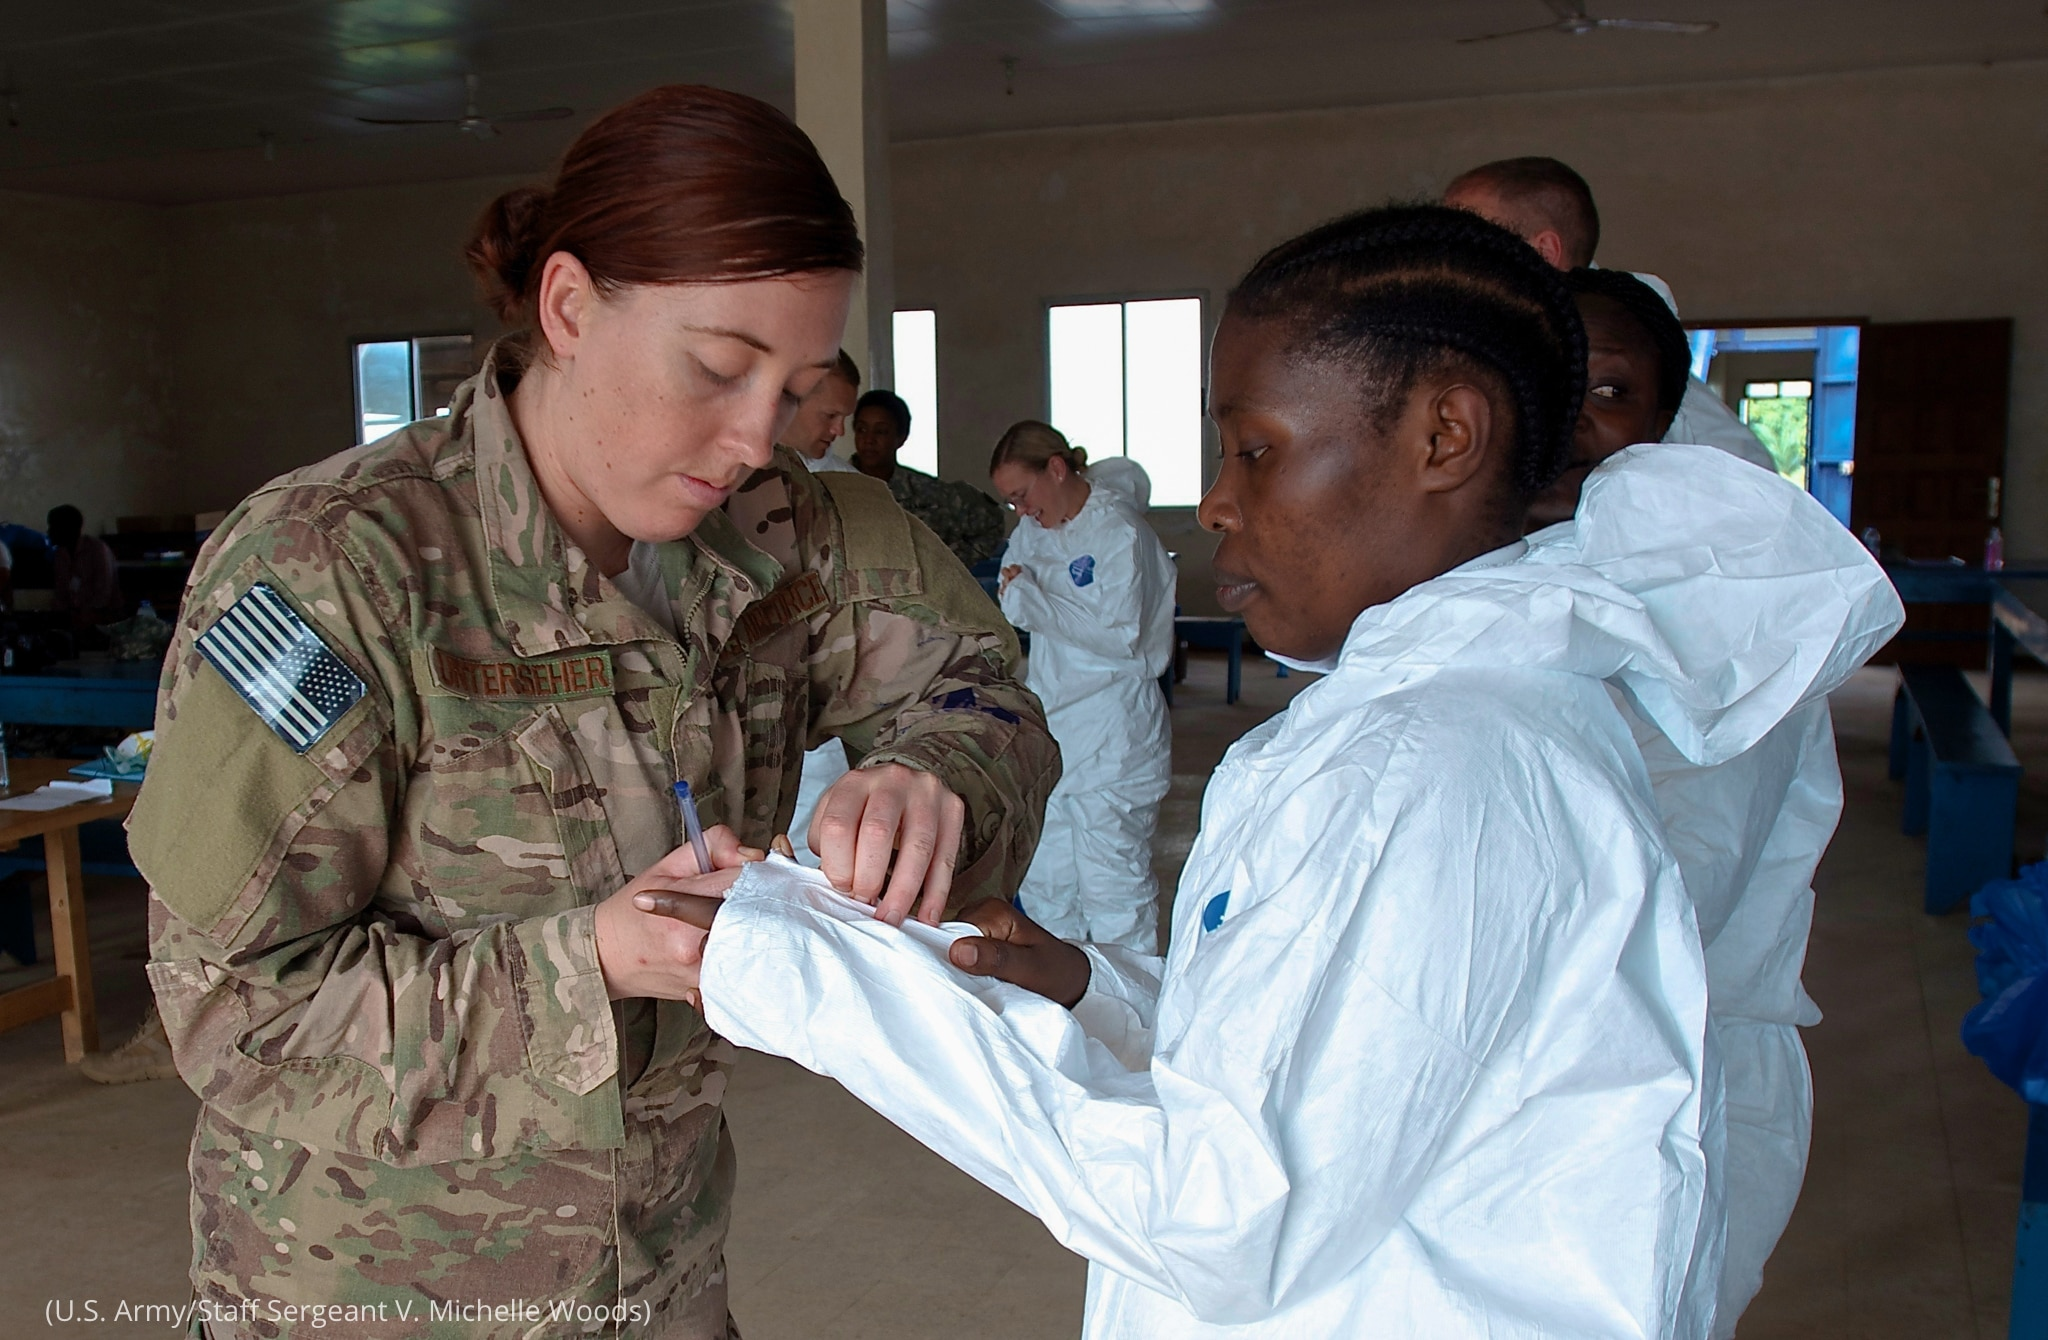 Woman in camouflage uniform helping another woman suit up in white protective garb (U.S. Army/Staff Sergeant. V. Michelle Woods)